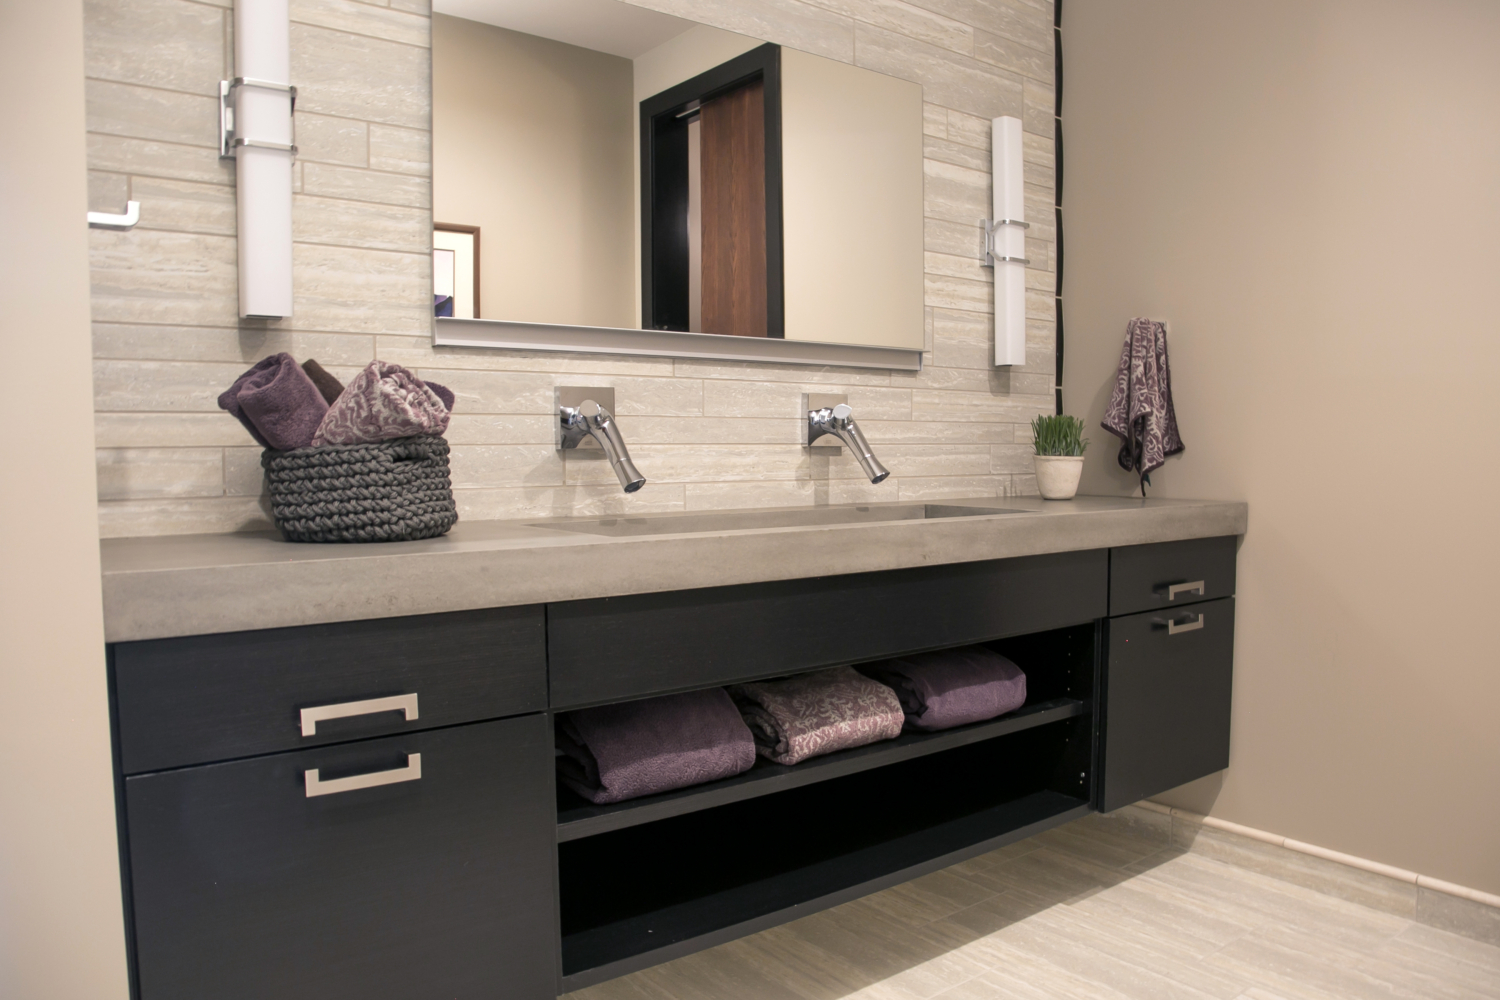 Bathroom Vanity Cabinetry by Geneva Cabinet in Lake Geneva WI